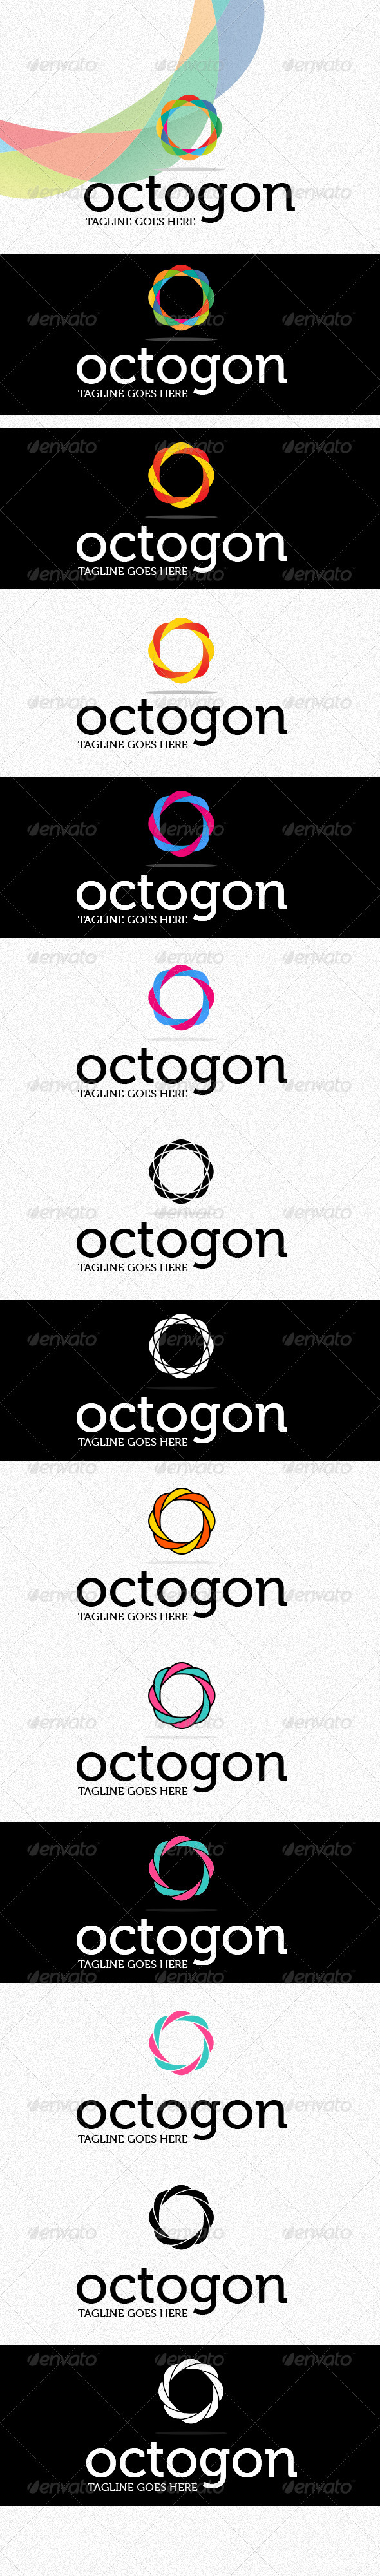 GraphicRiver Octogon Logo 3809376